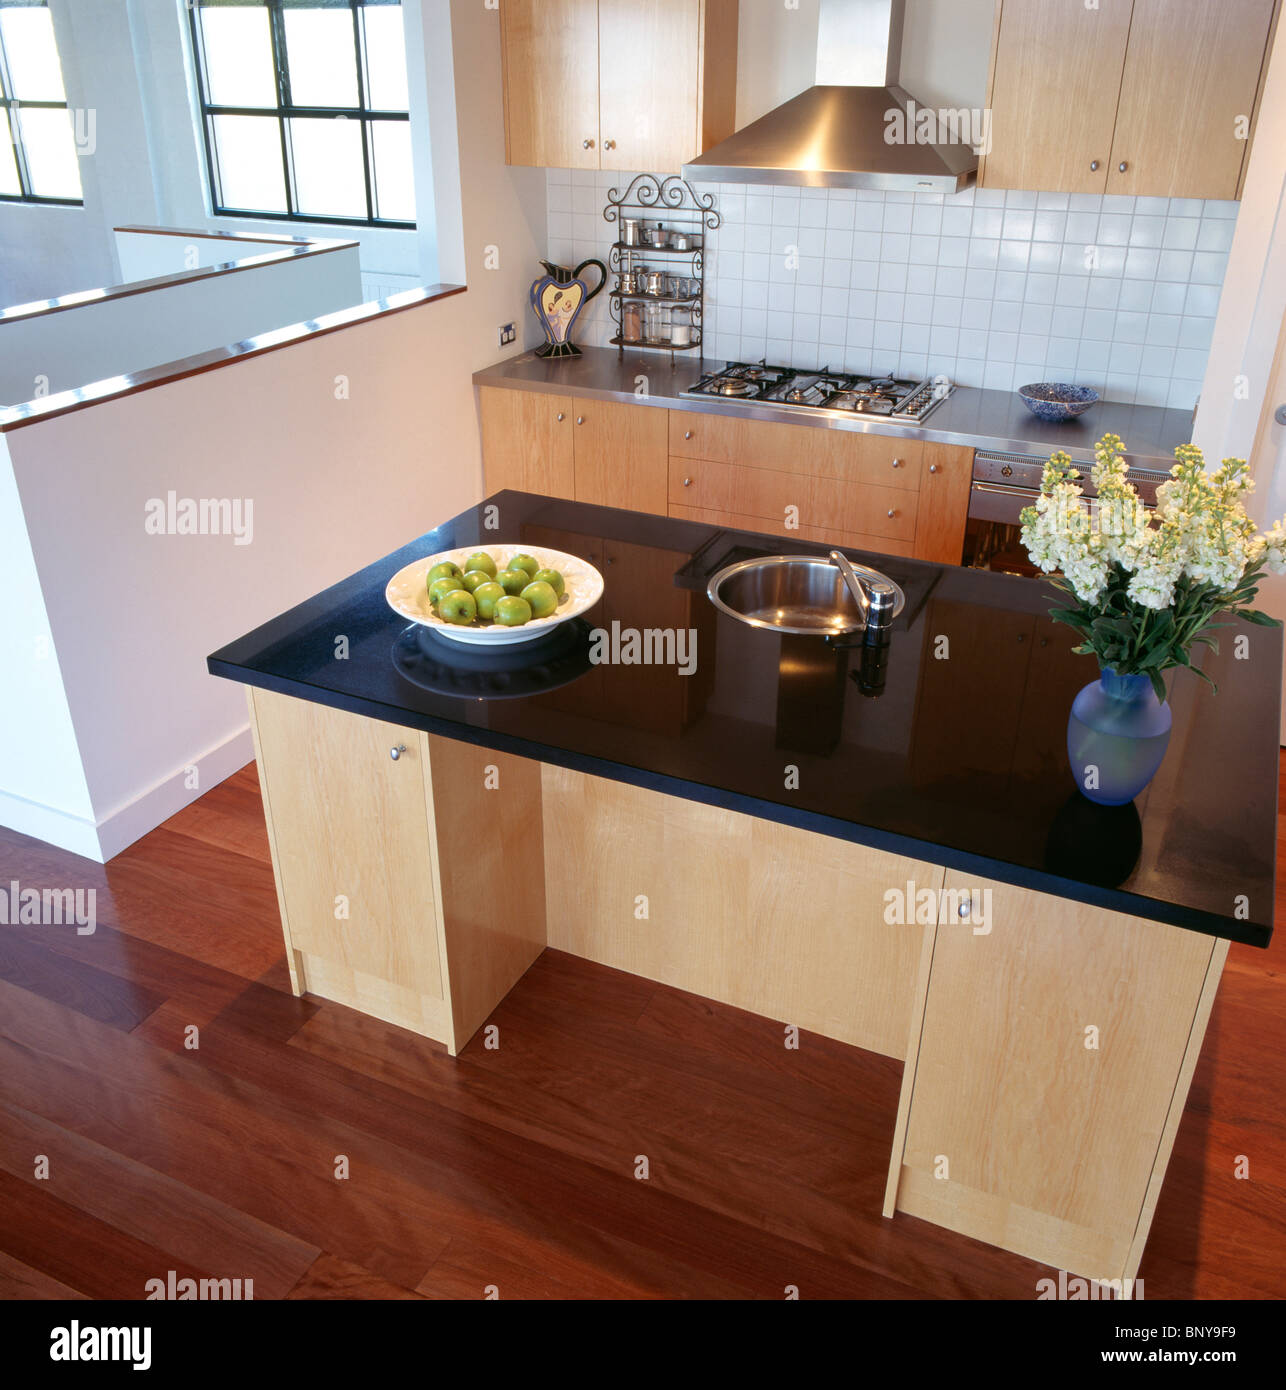 Small Stainless Steel Circular Sink In Pale Wood Island Unit With Stock Photo Royalty Free